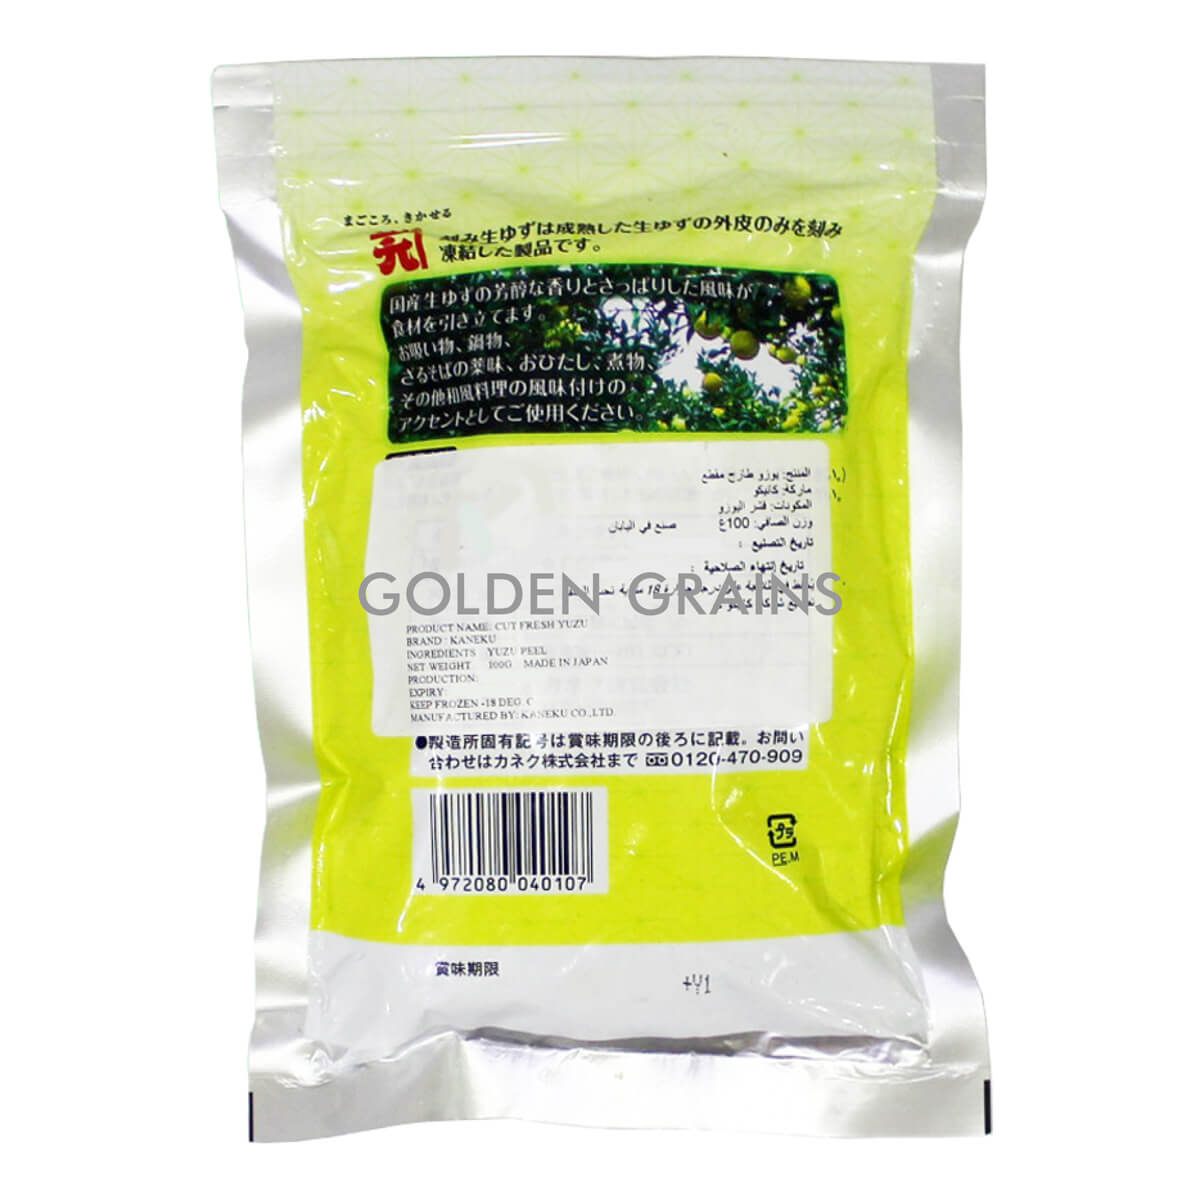 Golden Grains Kaneku - Yuzu Peel - Back.jpg